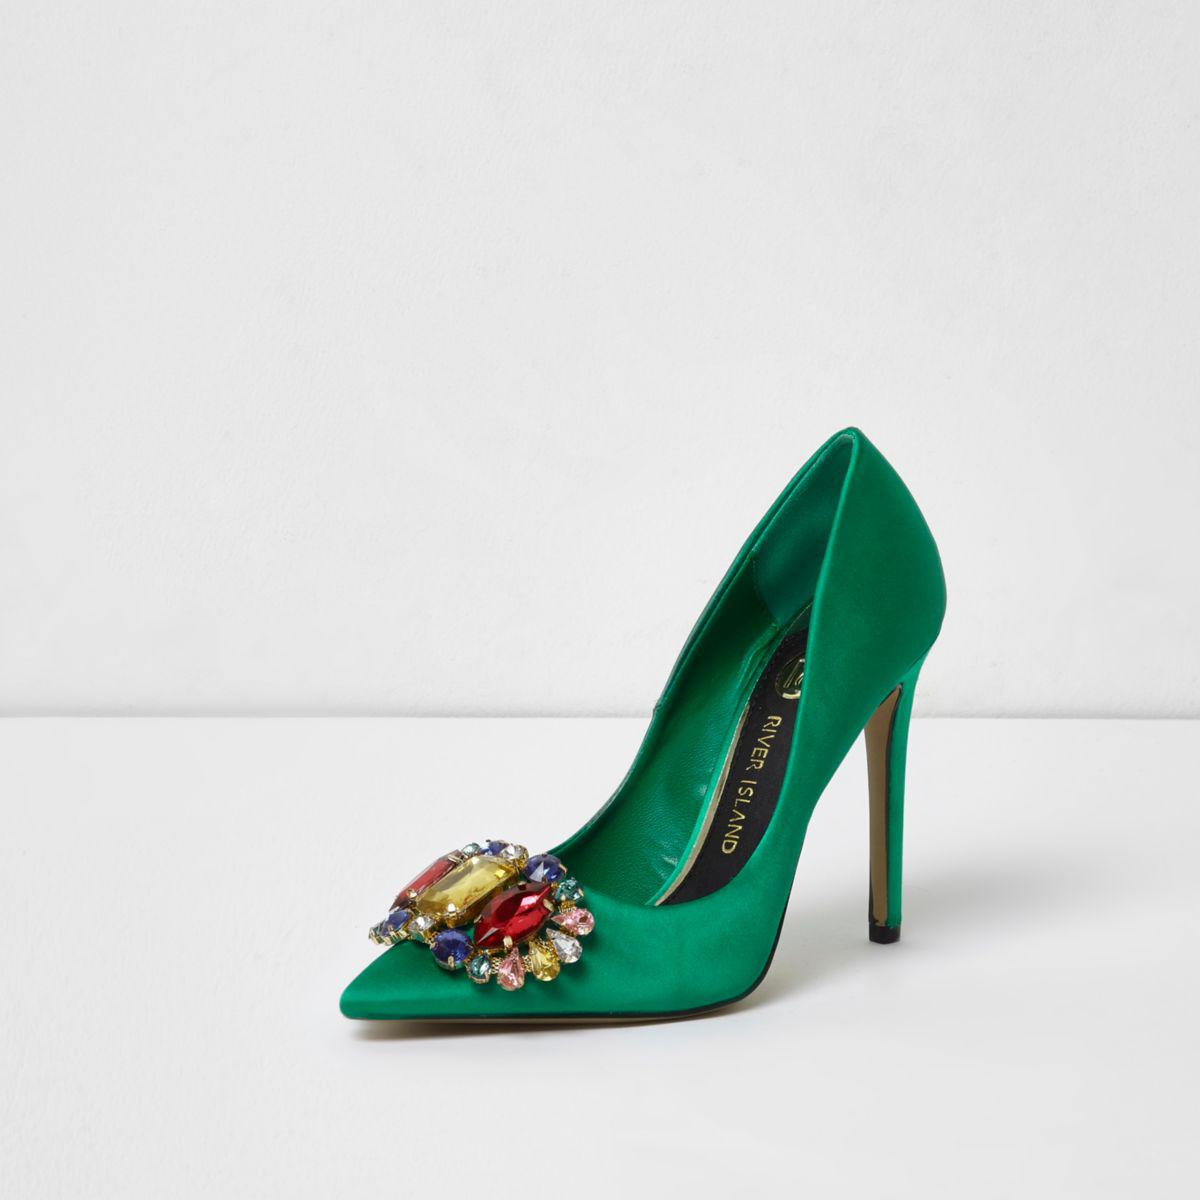 290ab1e64d7 Lyst - River Island Green Satin Jewel Embellished Court Shoes Green ...